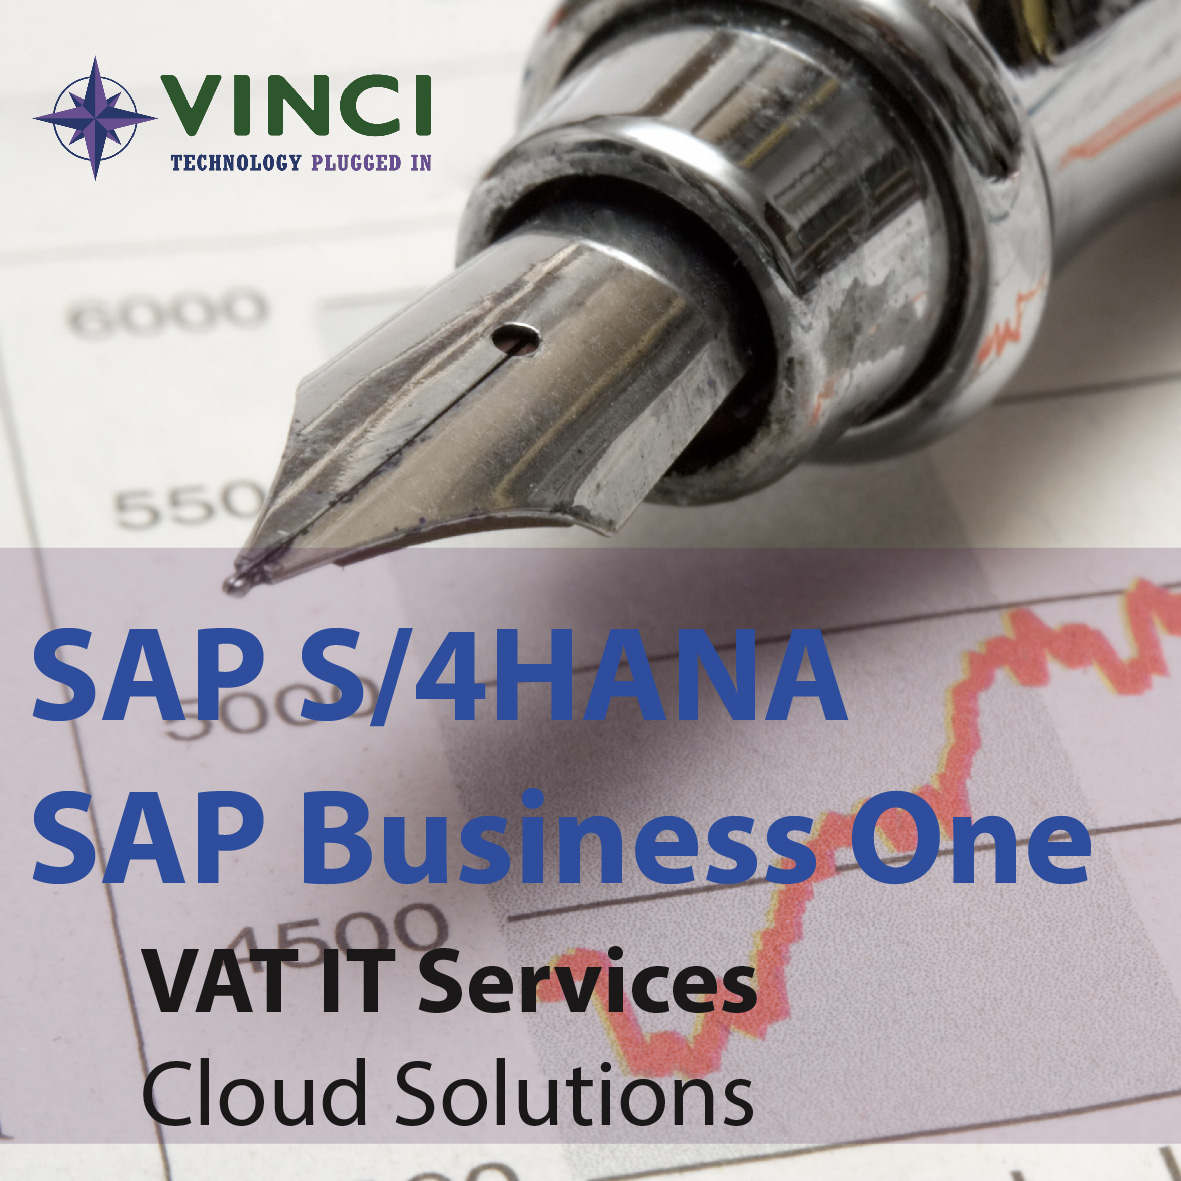 SAP VAT IT Services